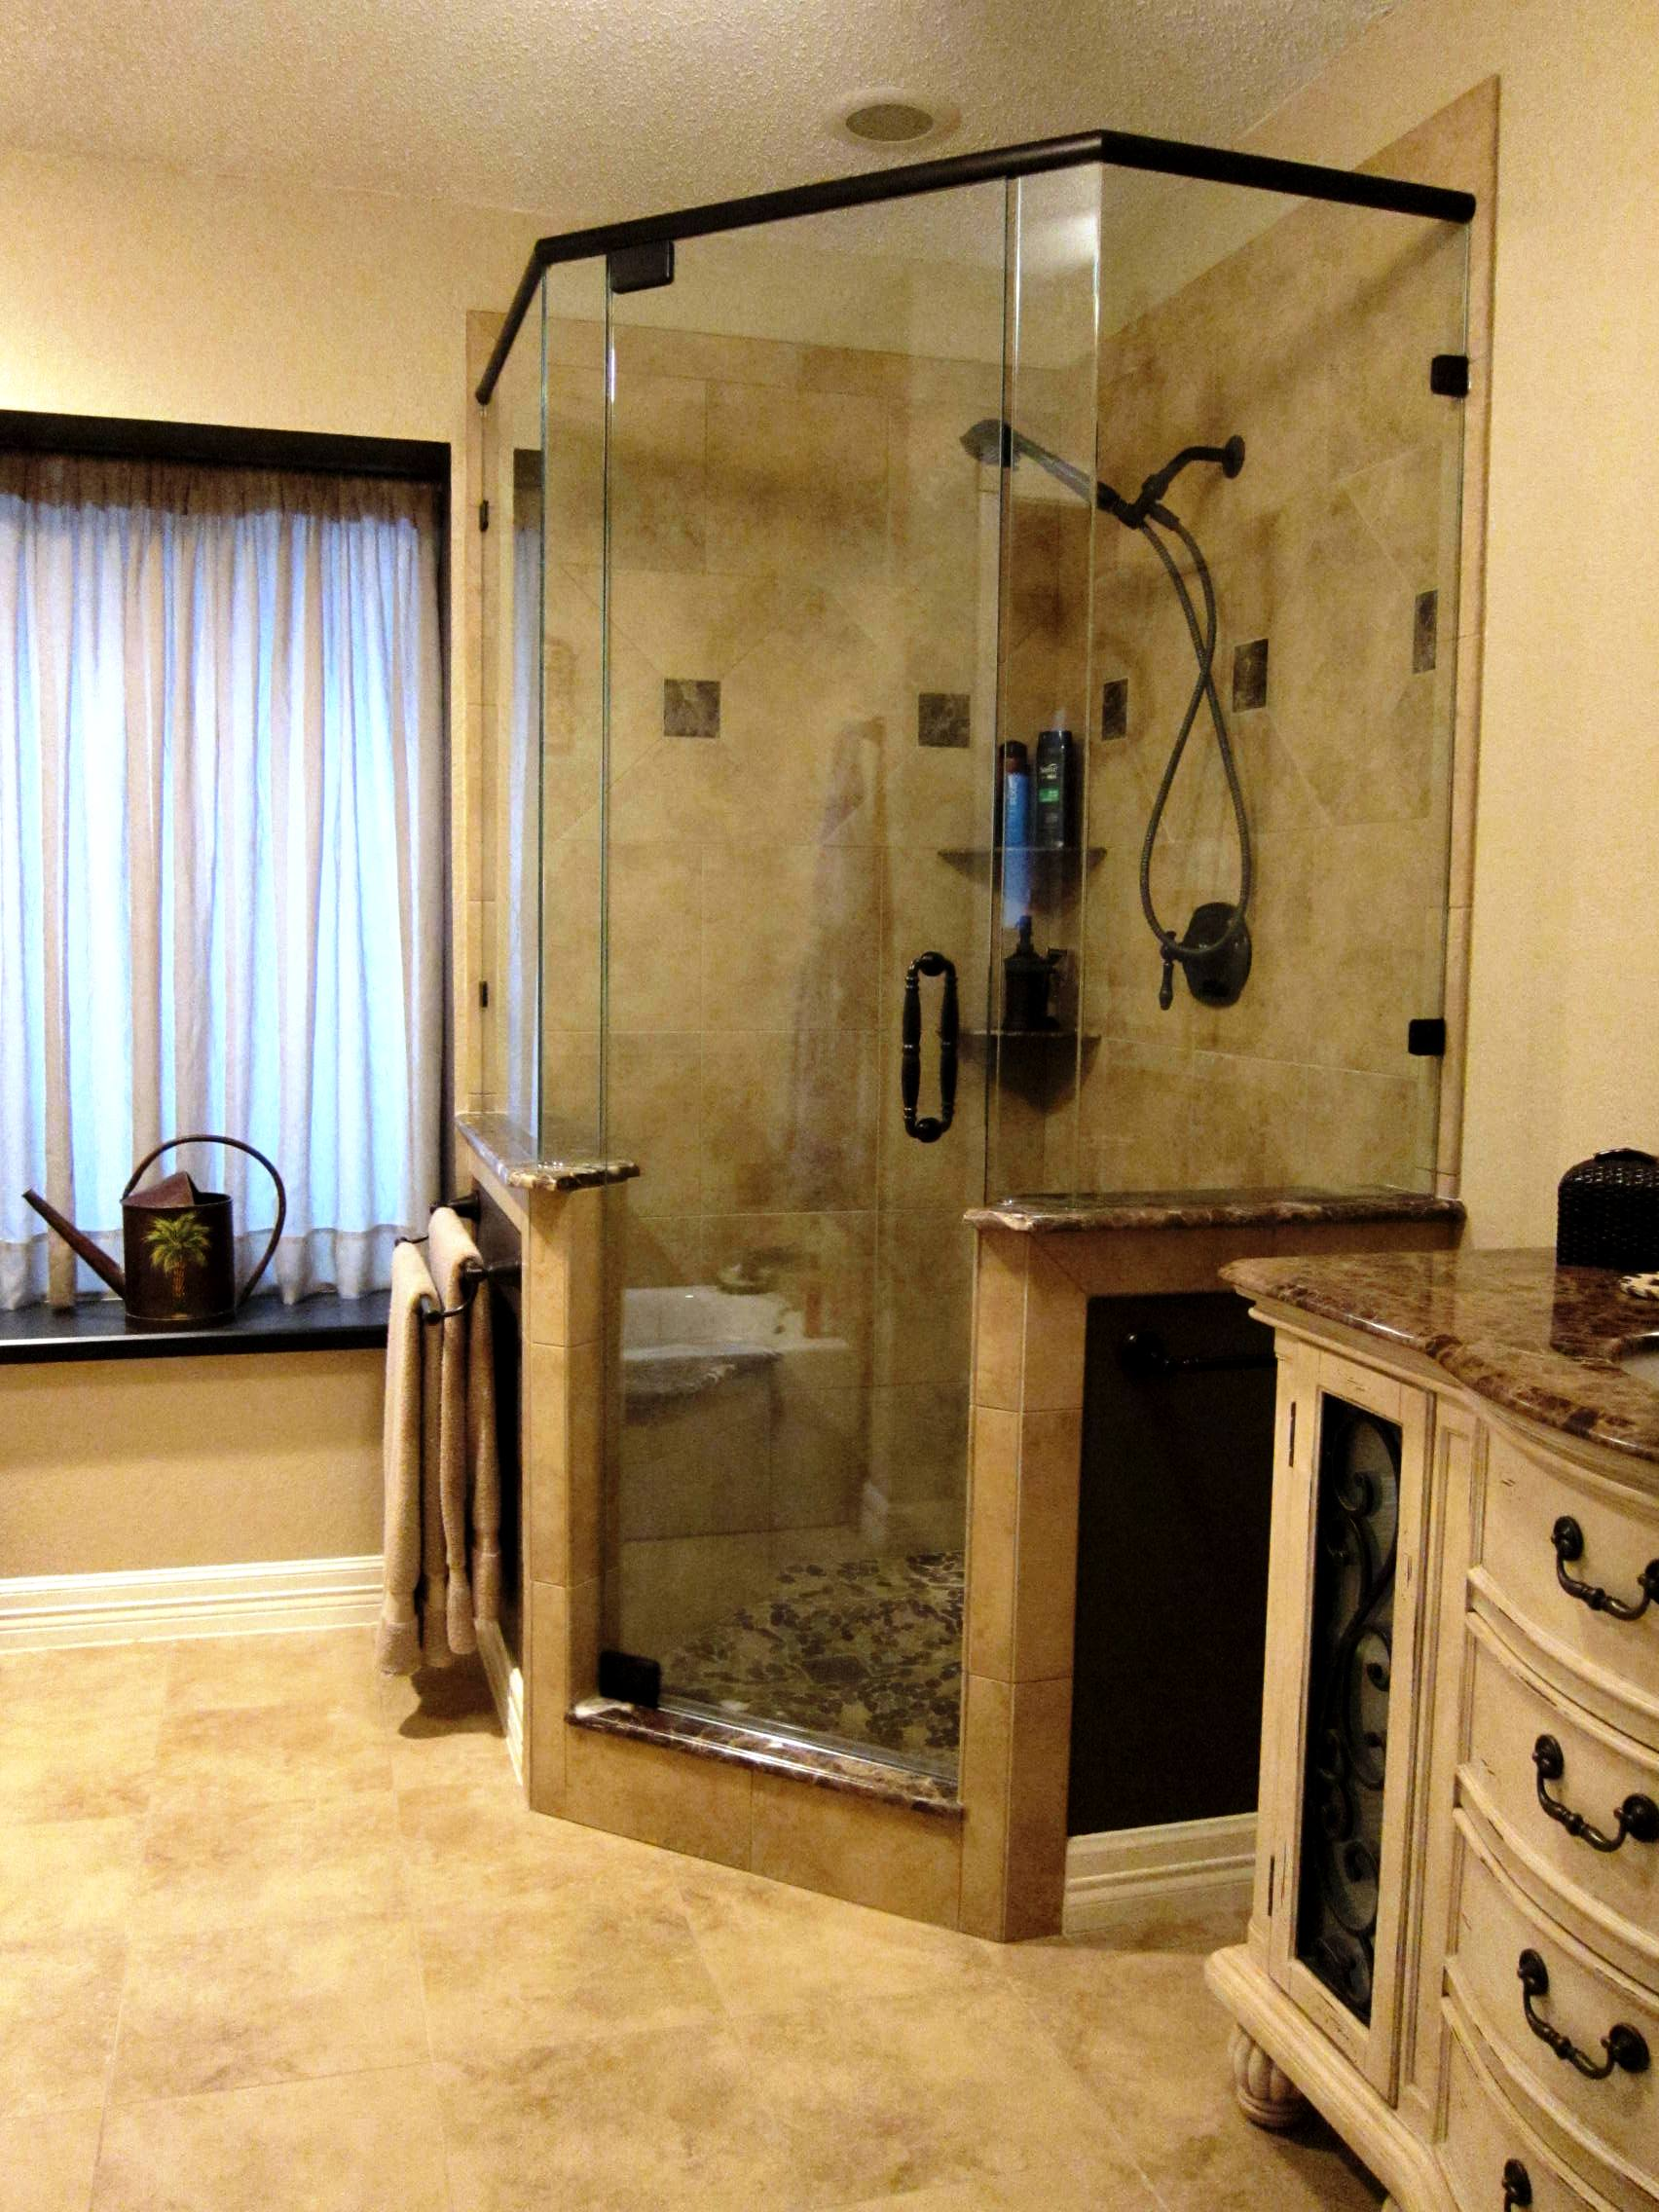 Typical Bathroom Remodel Cost In Texas By The Floor Barn Remodeling